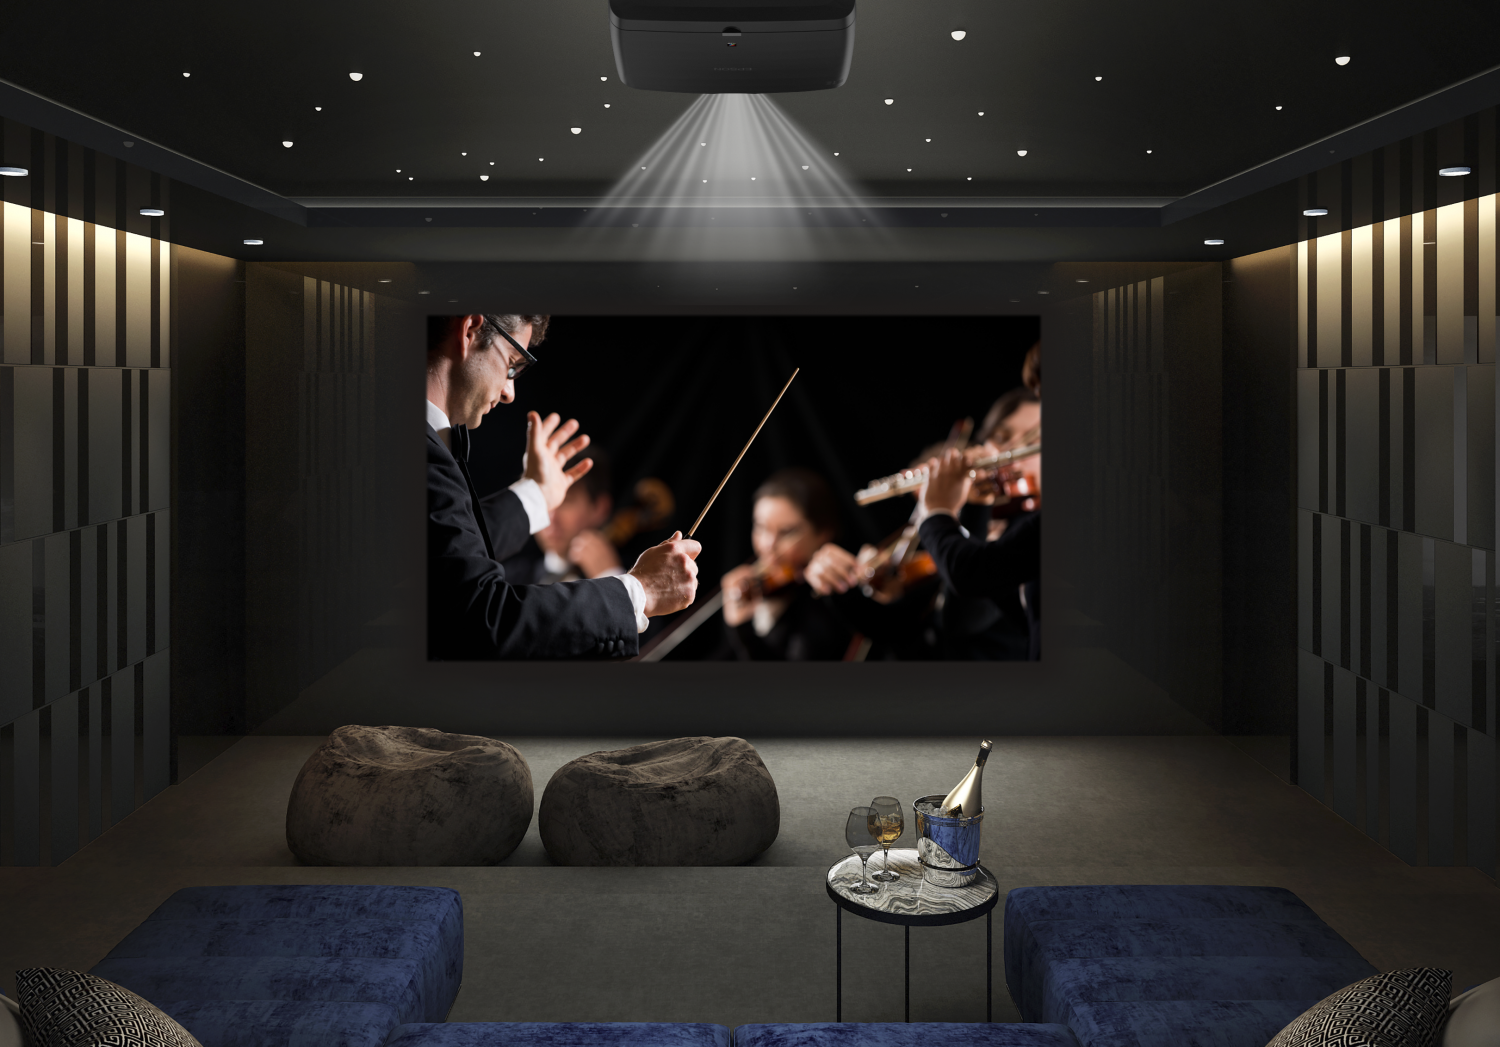 Epson EH-LS12000B Black 4K Laser Projector in a dedicated home cinema room by a blue sofa